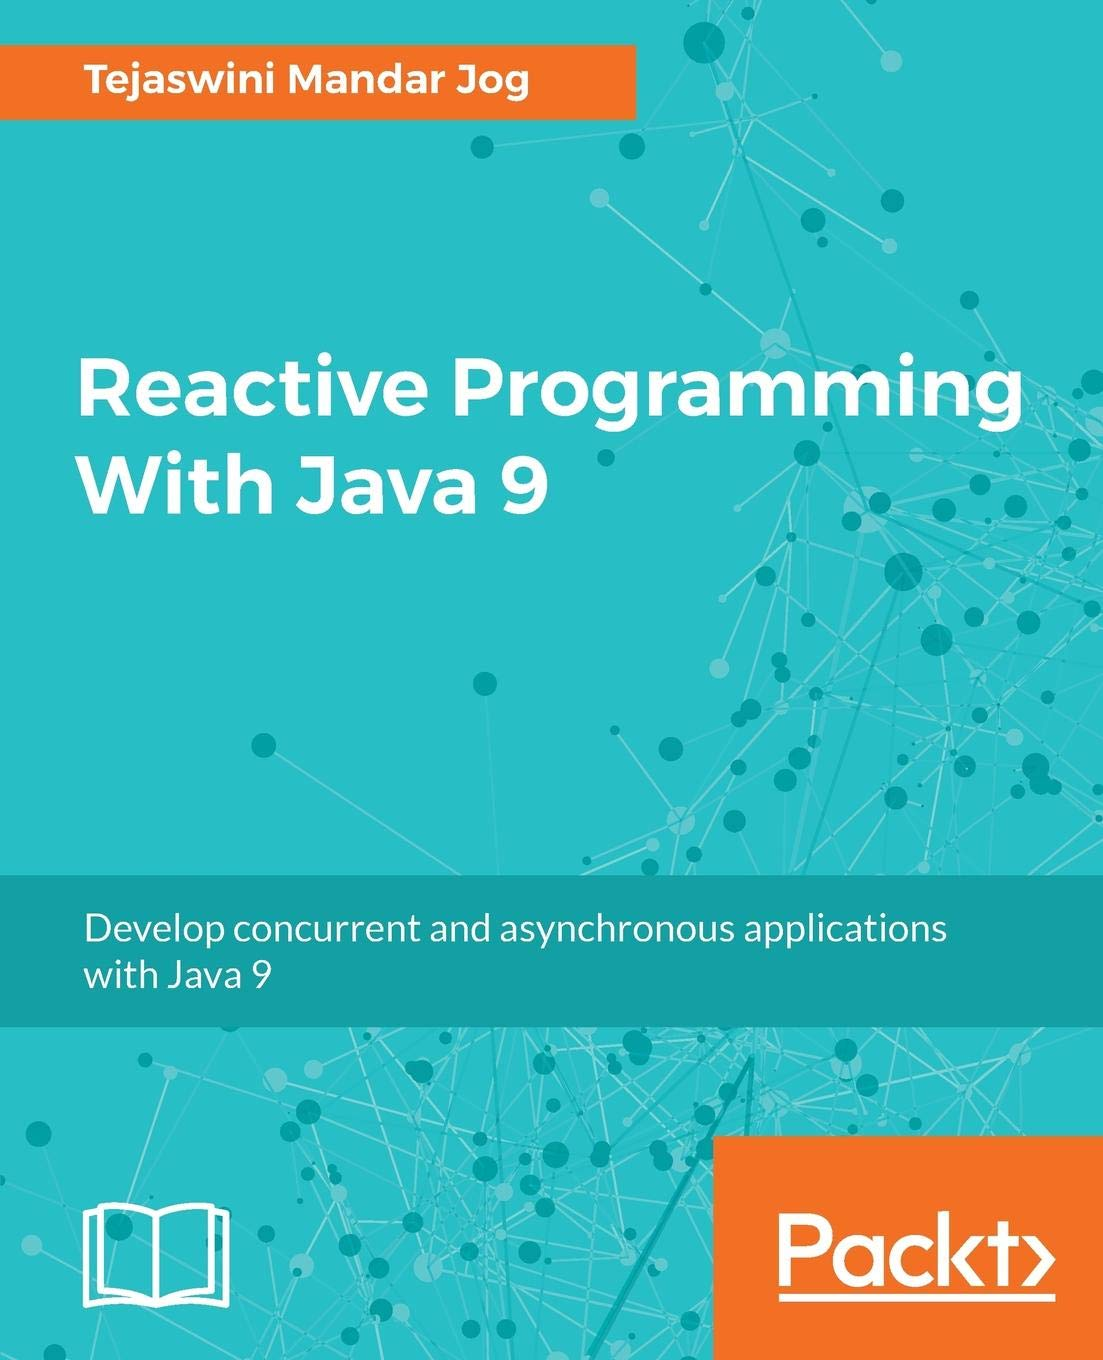 Reactive Programming With Java 9: Build Asynchronous